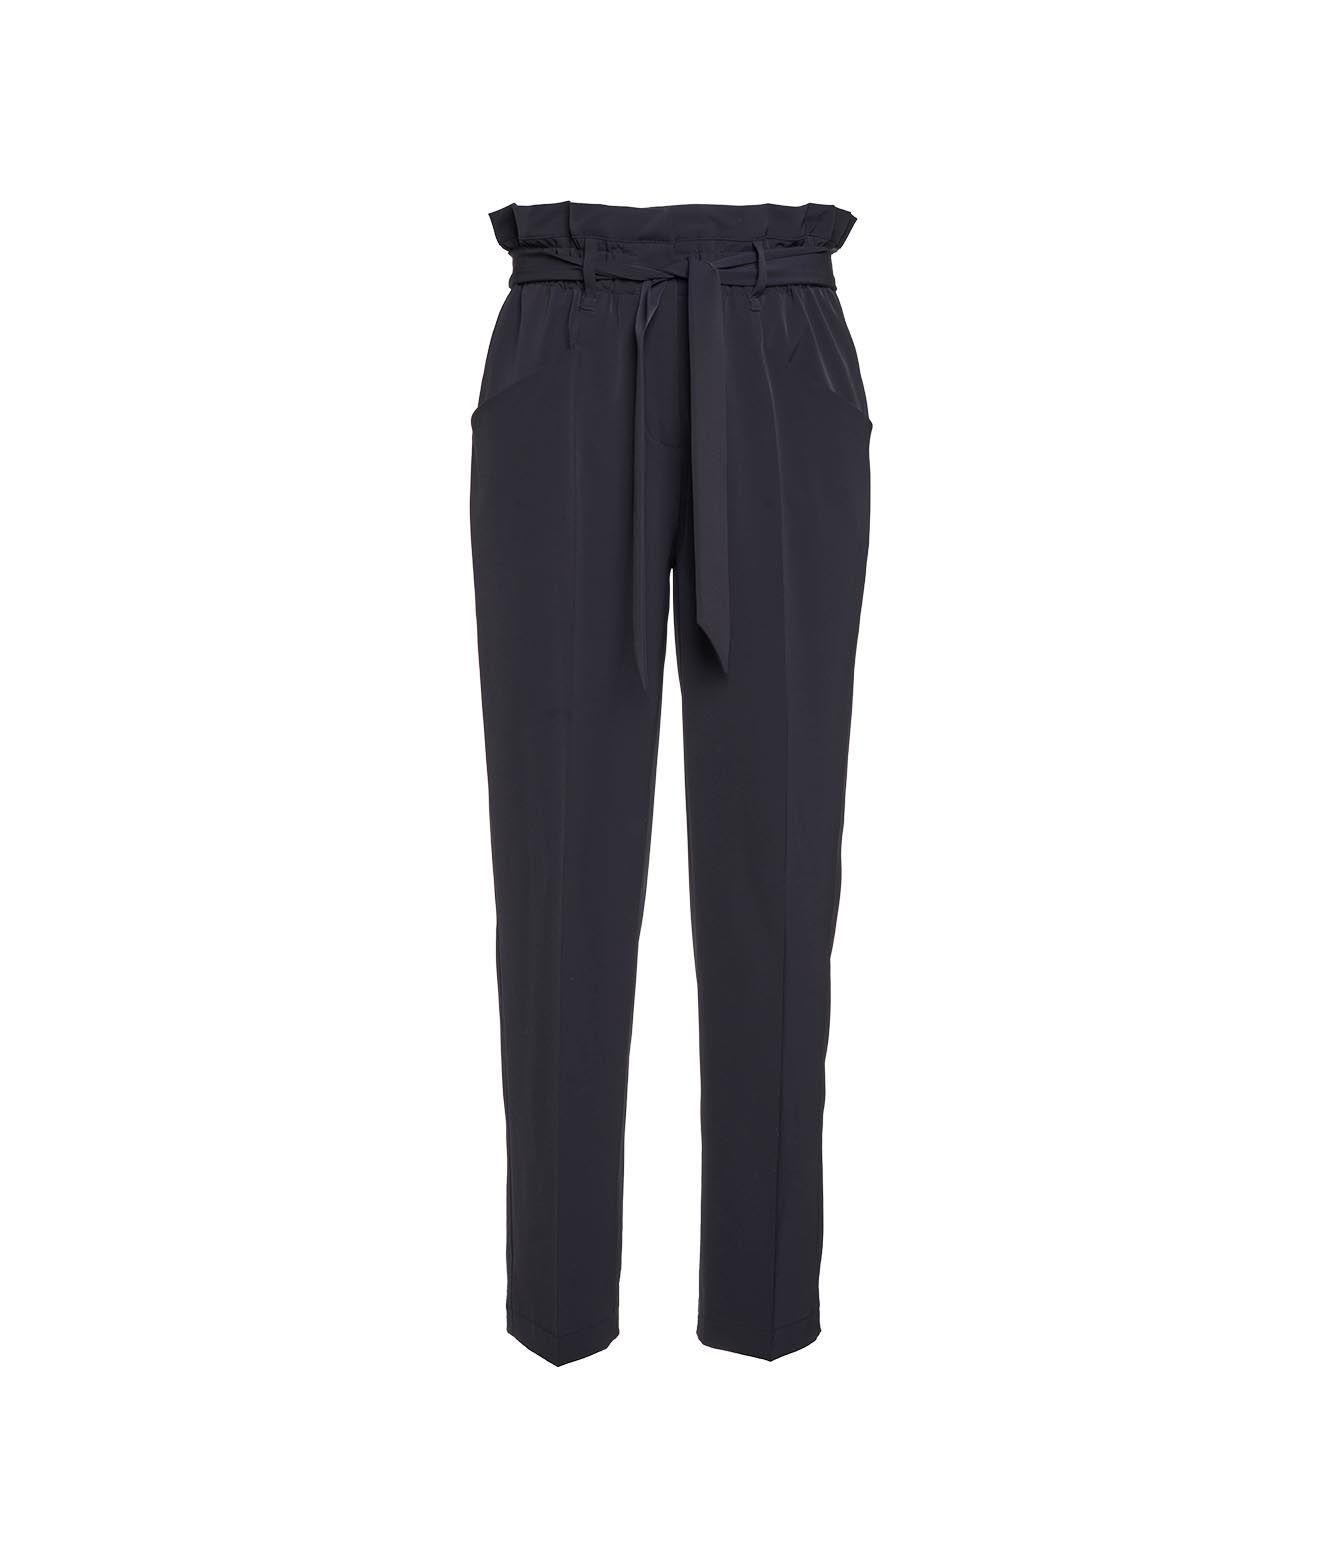 Cambio CAMBIO CLOTHING WOMEN'S 604502570011498 BLUE OTHER MATERIALS PANTS